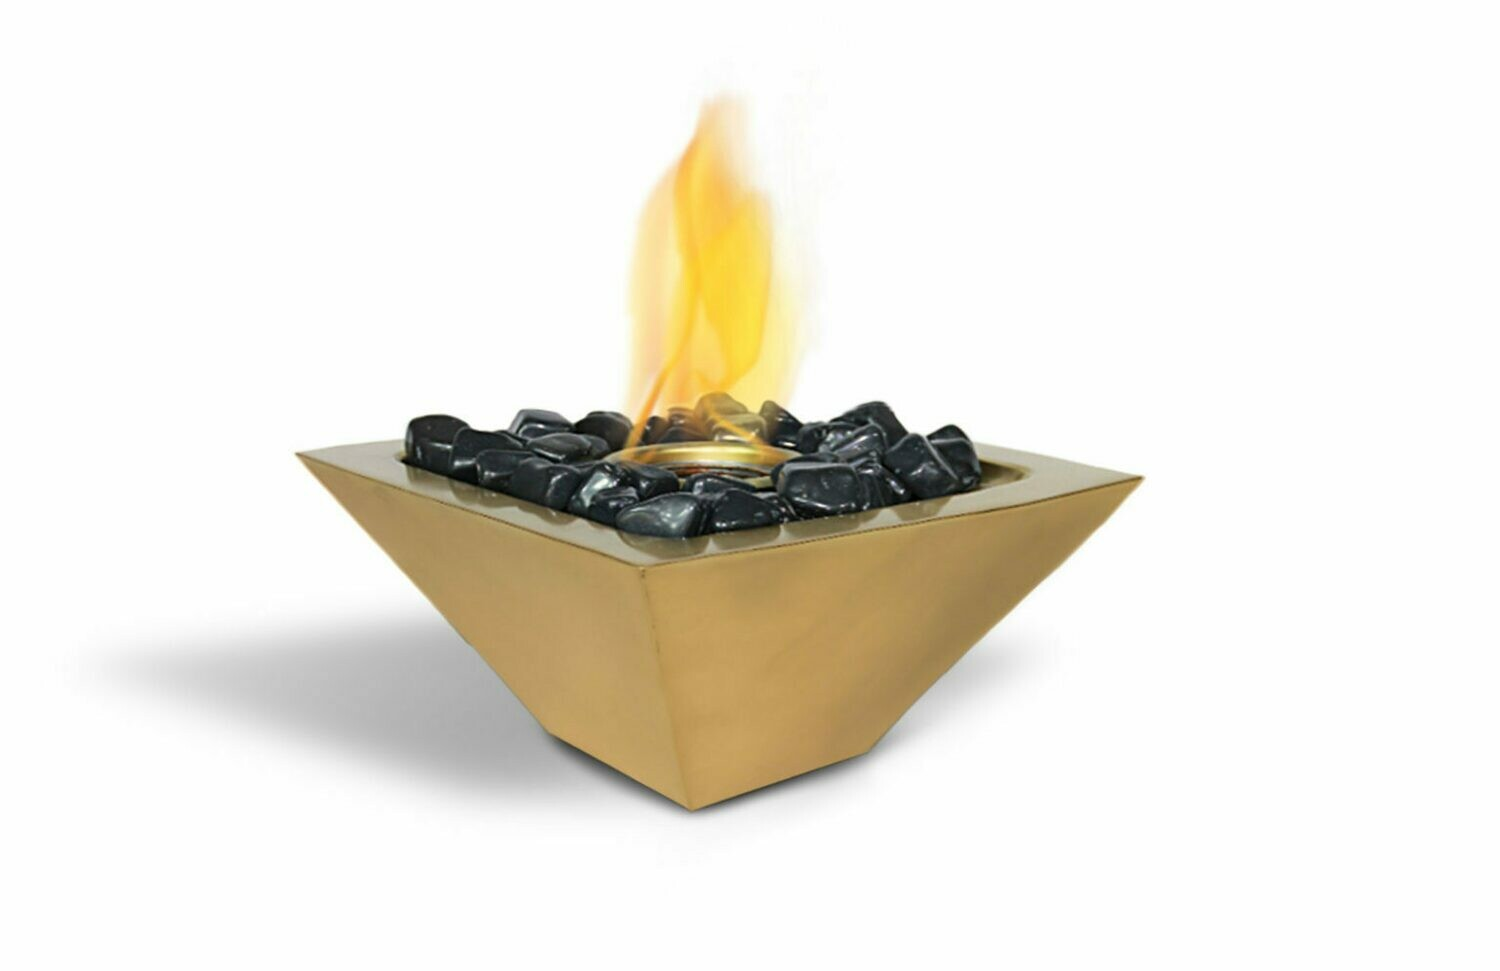 Elite Gold Table Top Fireplace